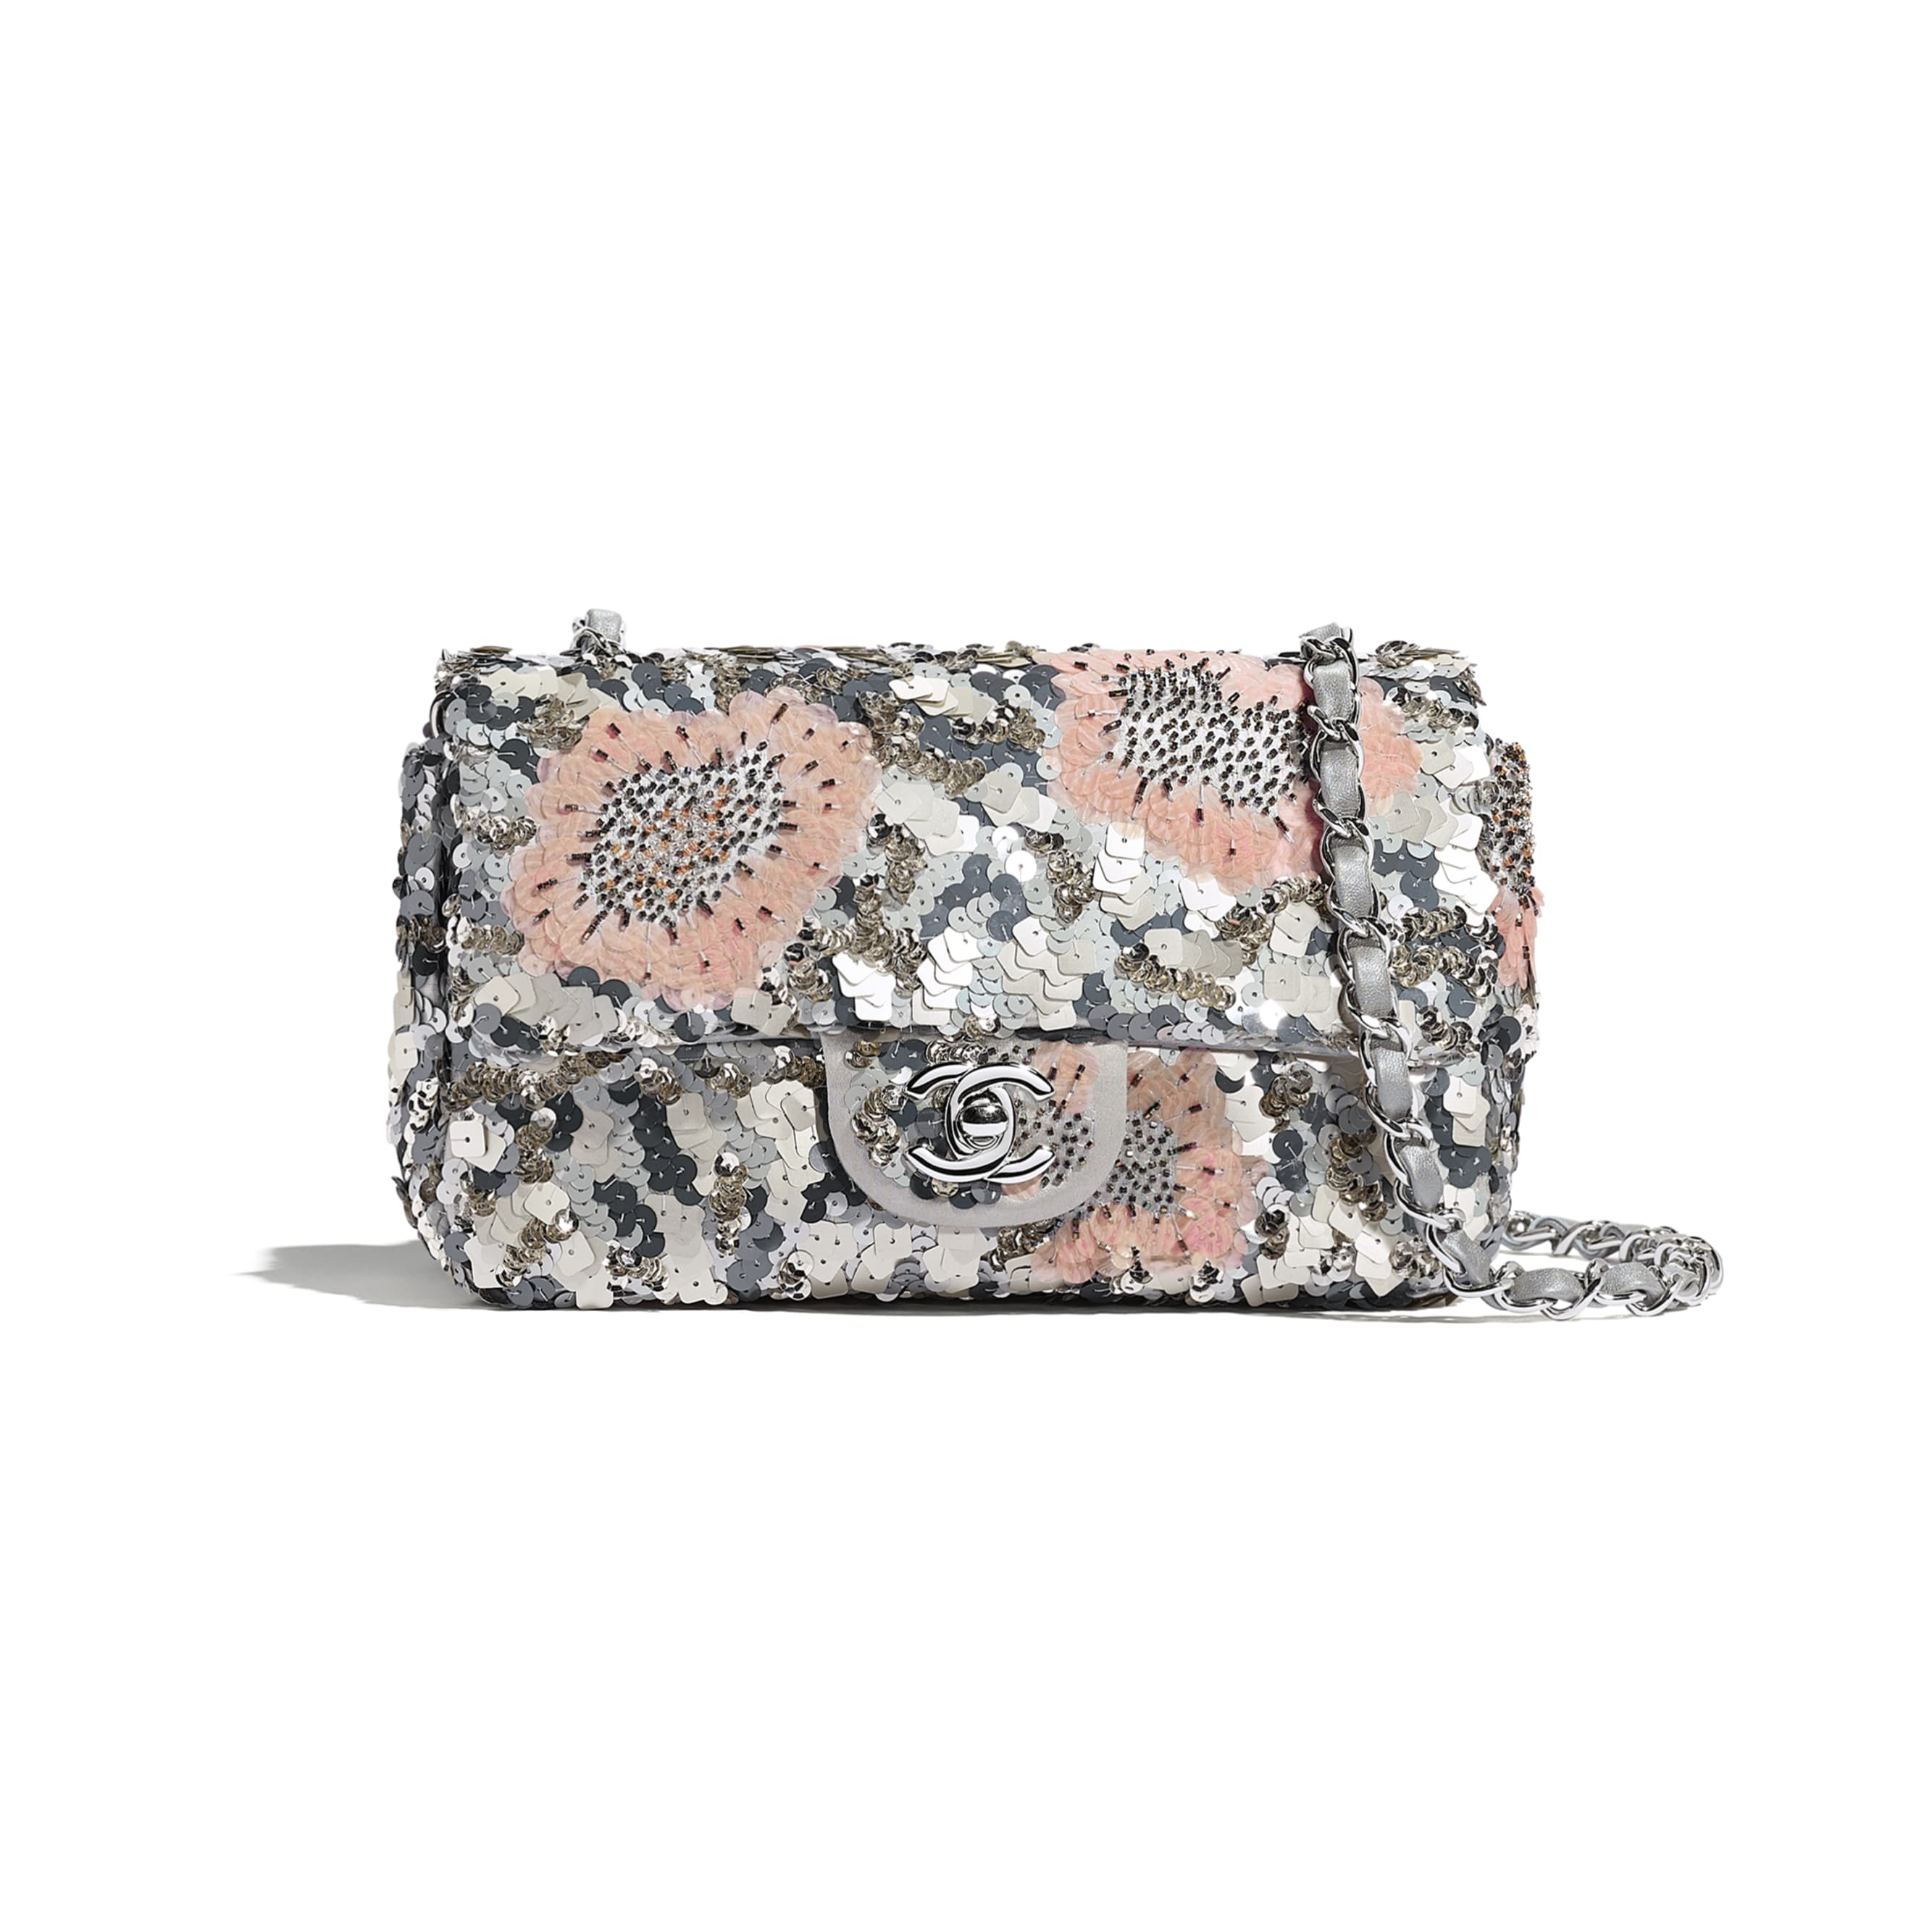 Mini Flap Bag - Gray, Silver & Pink - Sequins, Glass Pearls & Silver-Tone Metal - Default view - see standard sized version